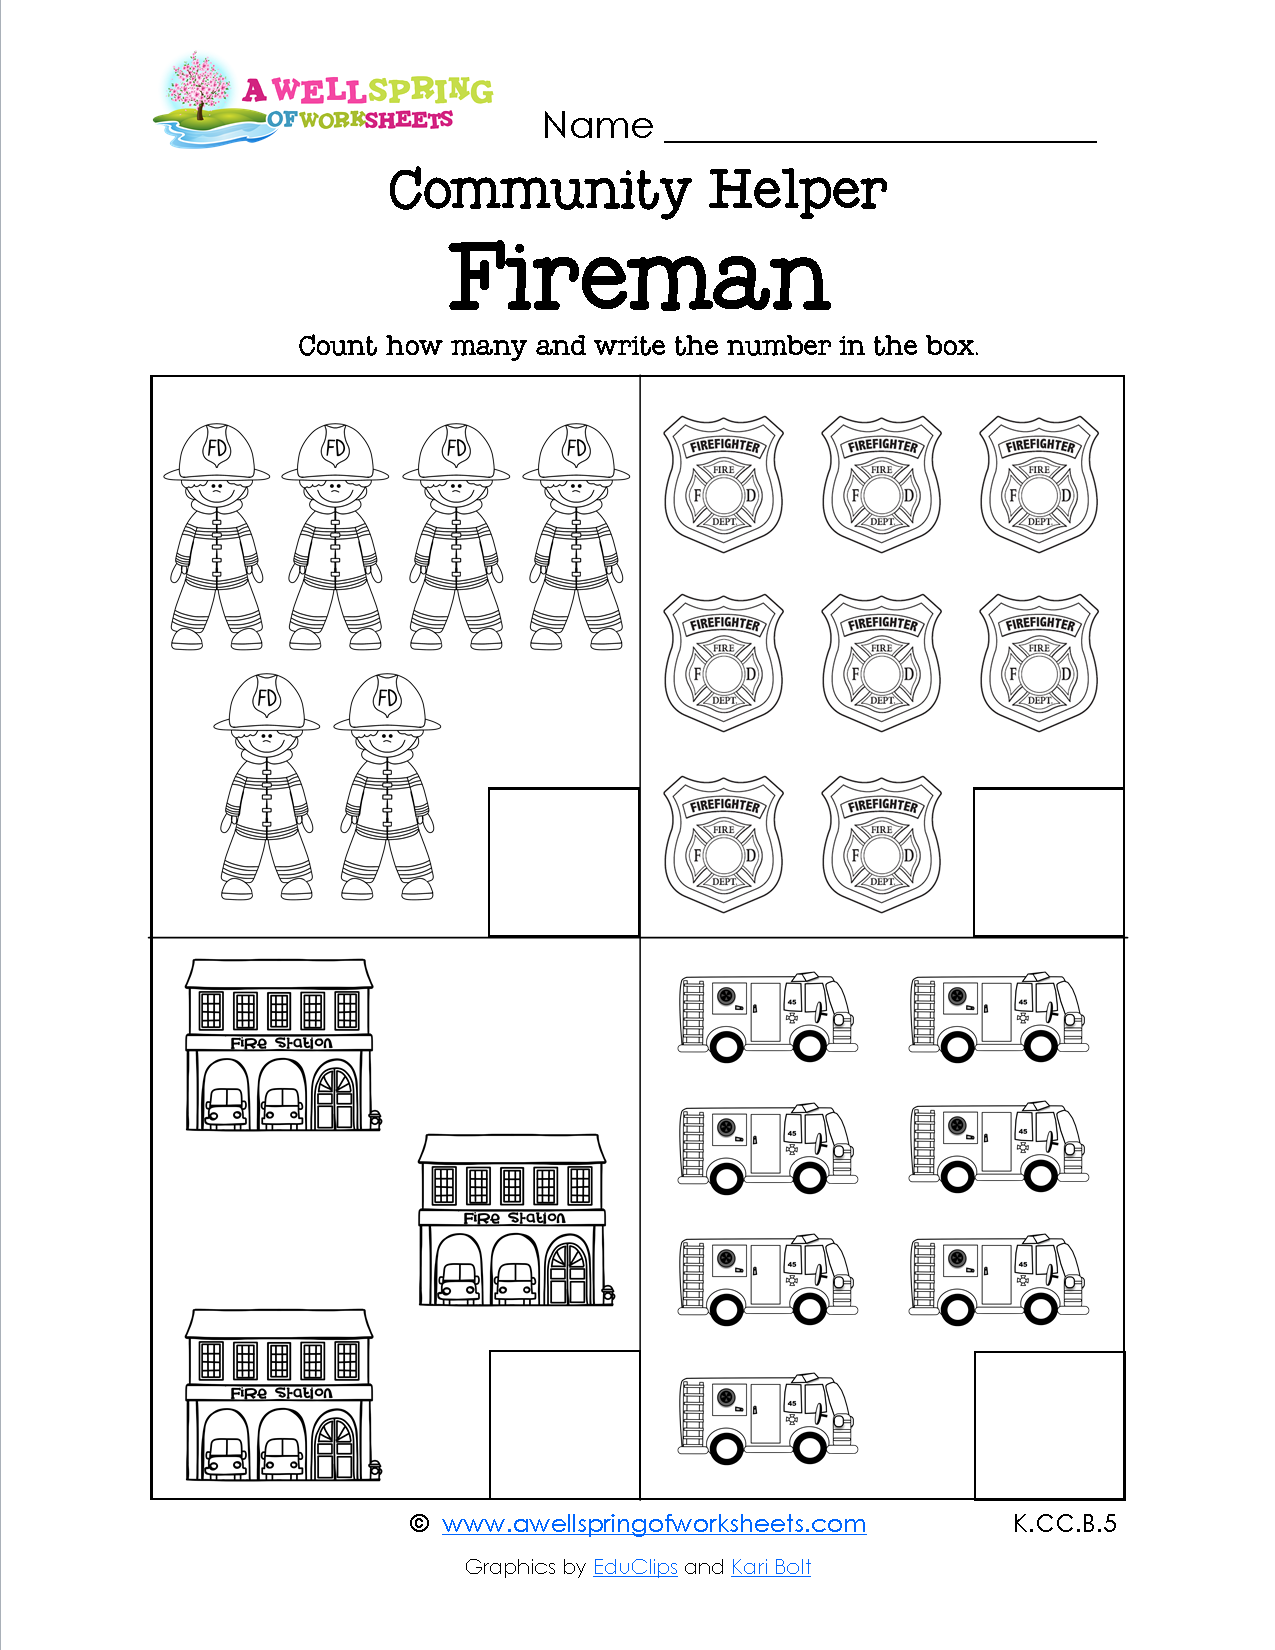 Worksheets Community Helpers Kindergarten Worksheets community helpers count how many these worksheets have four to six sets per page